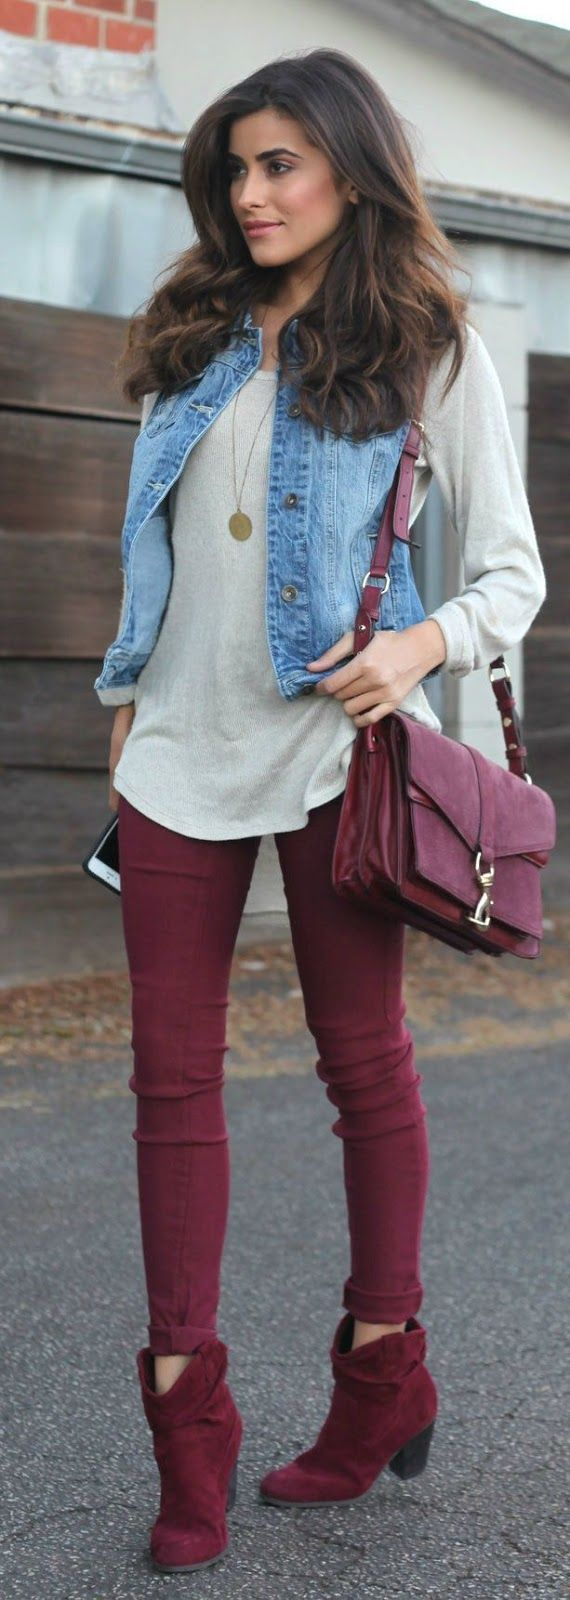 r-burgundy-skinny-jeans-white-tee-necklace-pend-blue-light-vest-jean-burgundy-bag-burgundy-shoe-booties-howtowear-fashion-style-outfit-fall-winter-brun-lunch.jpg